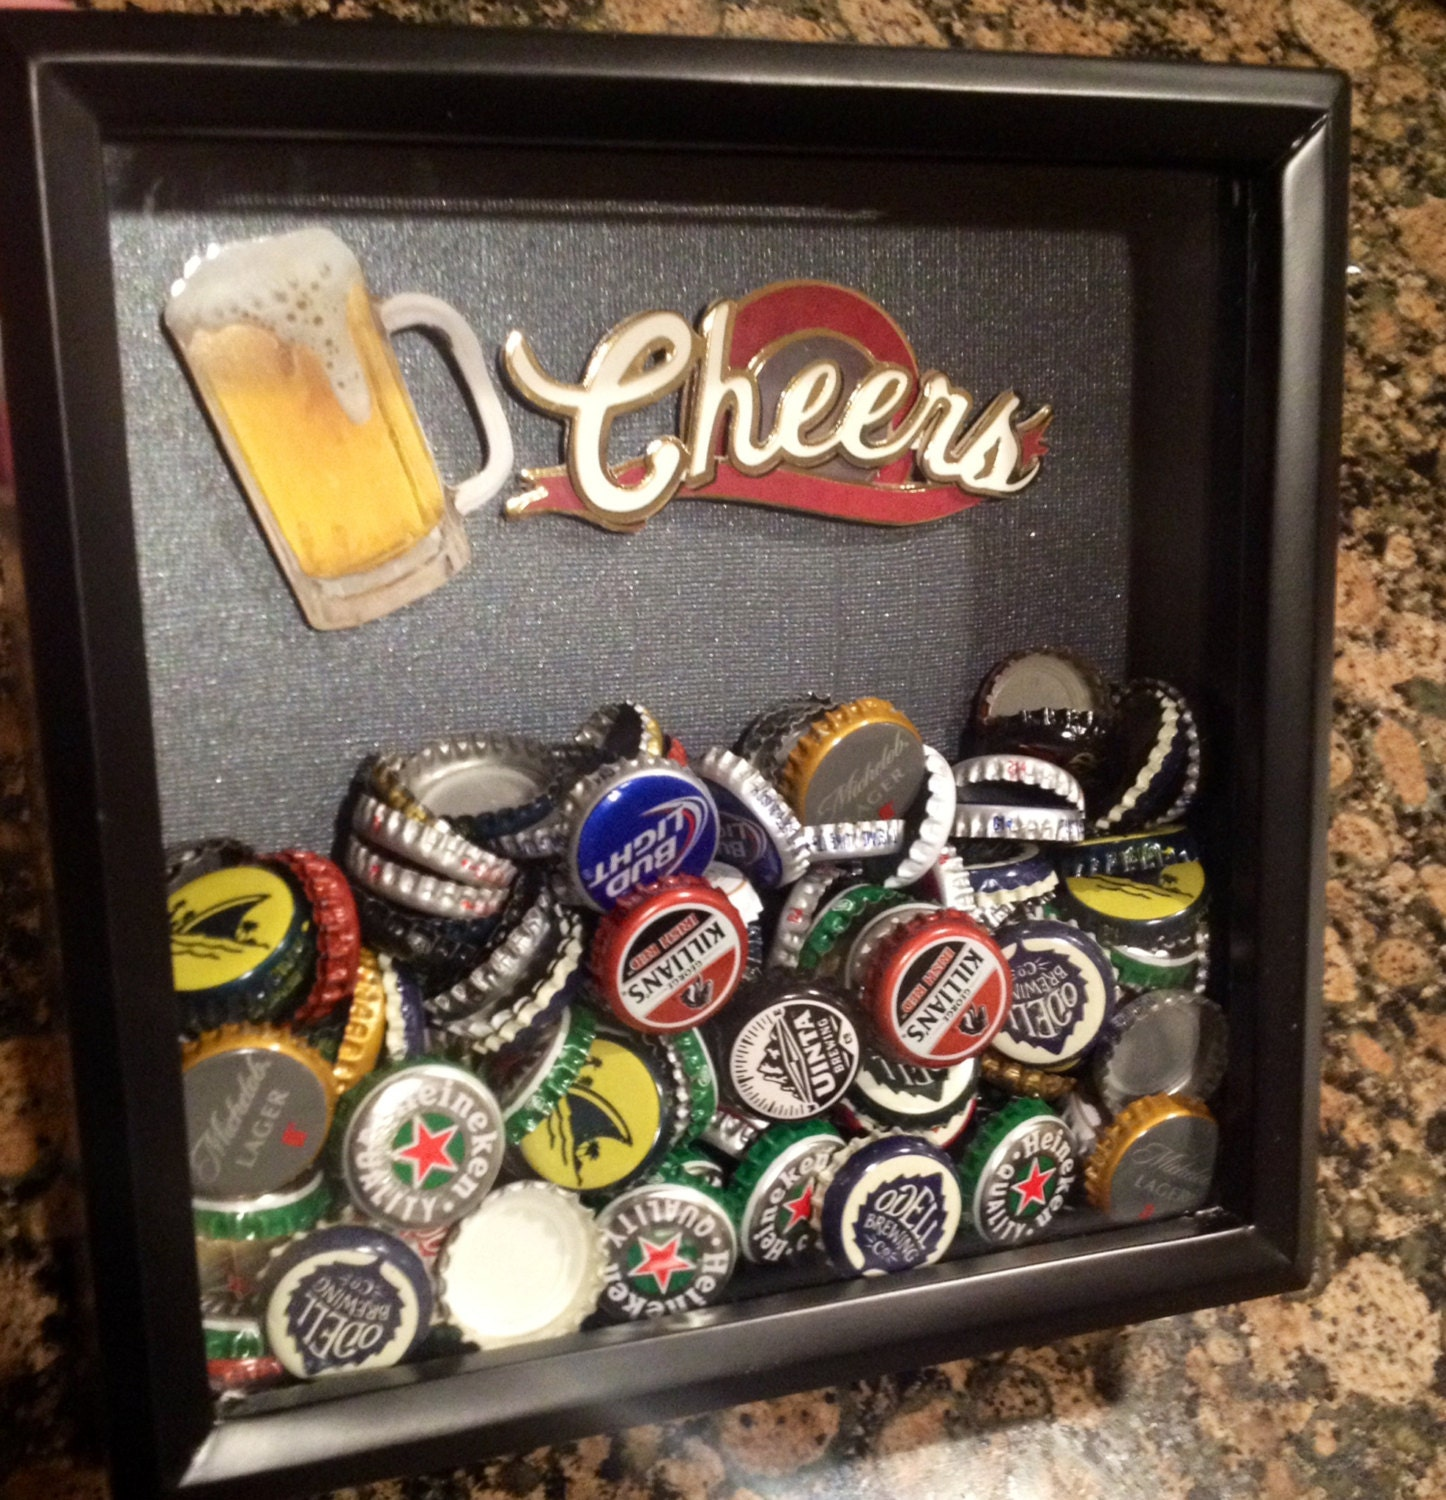 8x8 Beer Bottle Cap Holder Shadow Box For The Beer Lover In